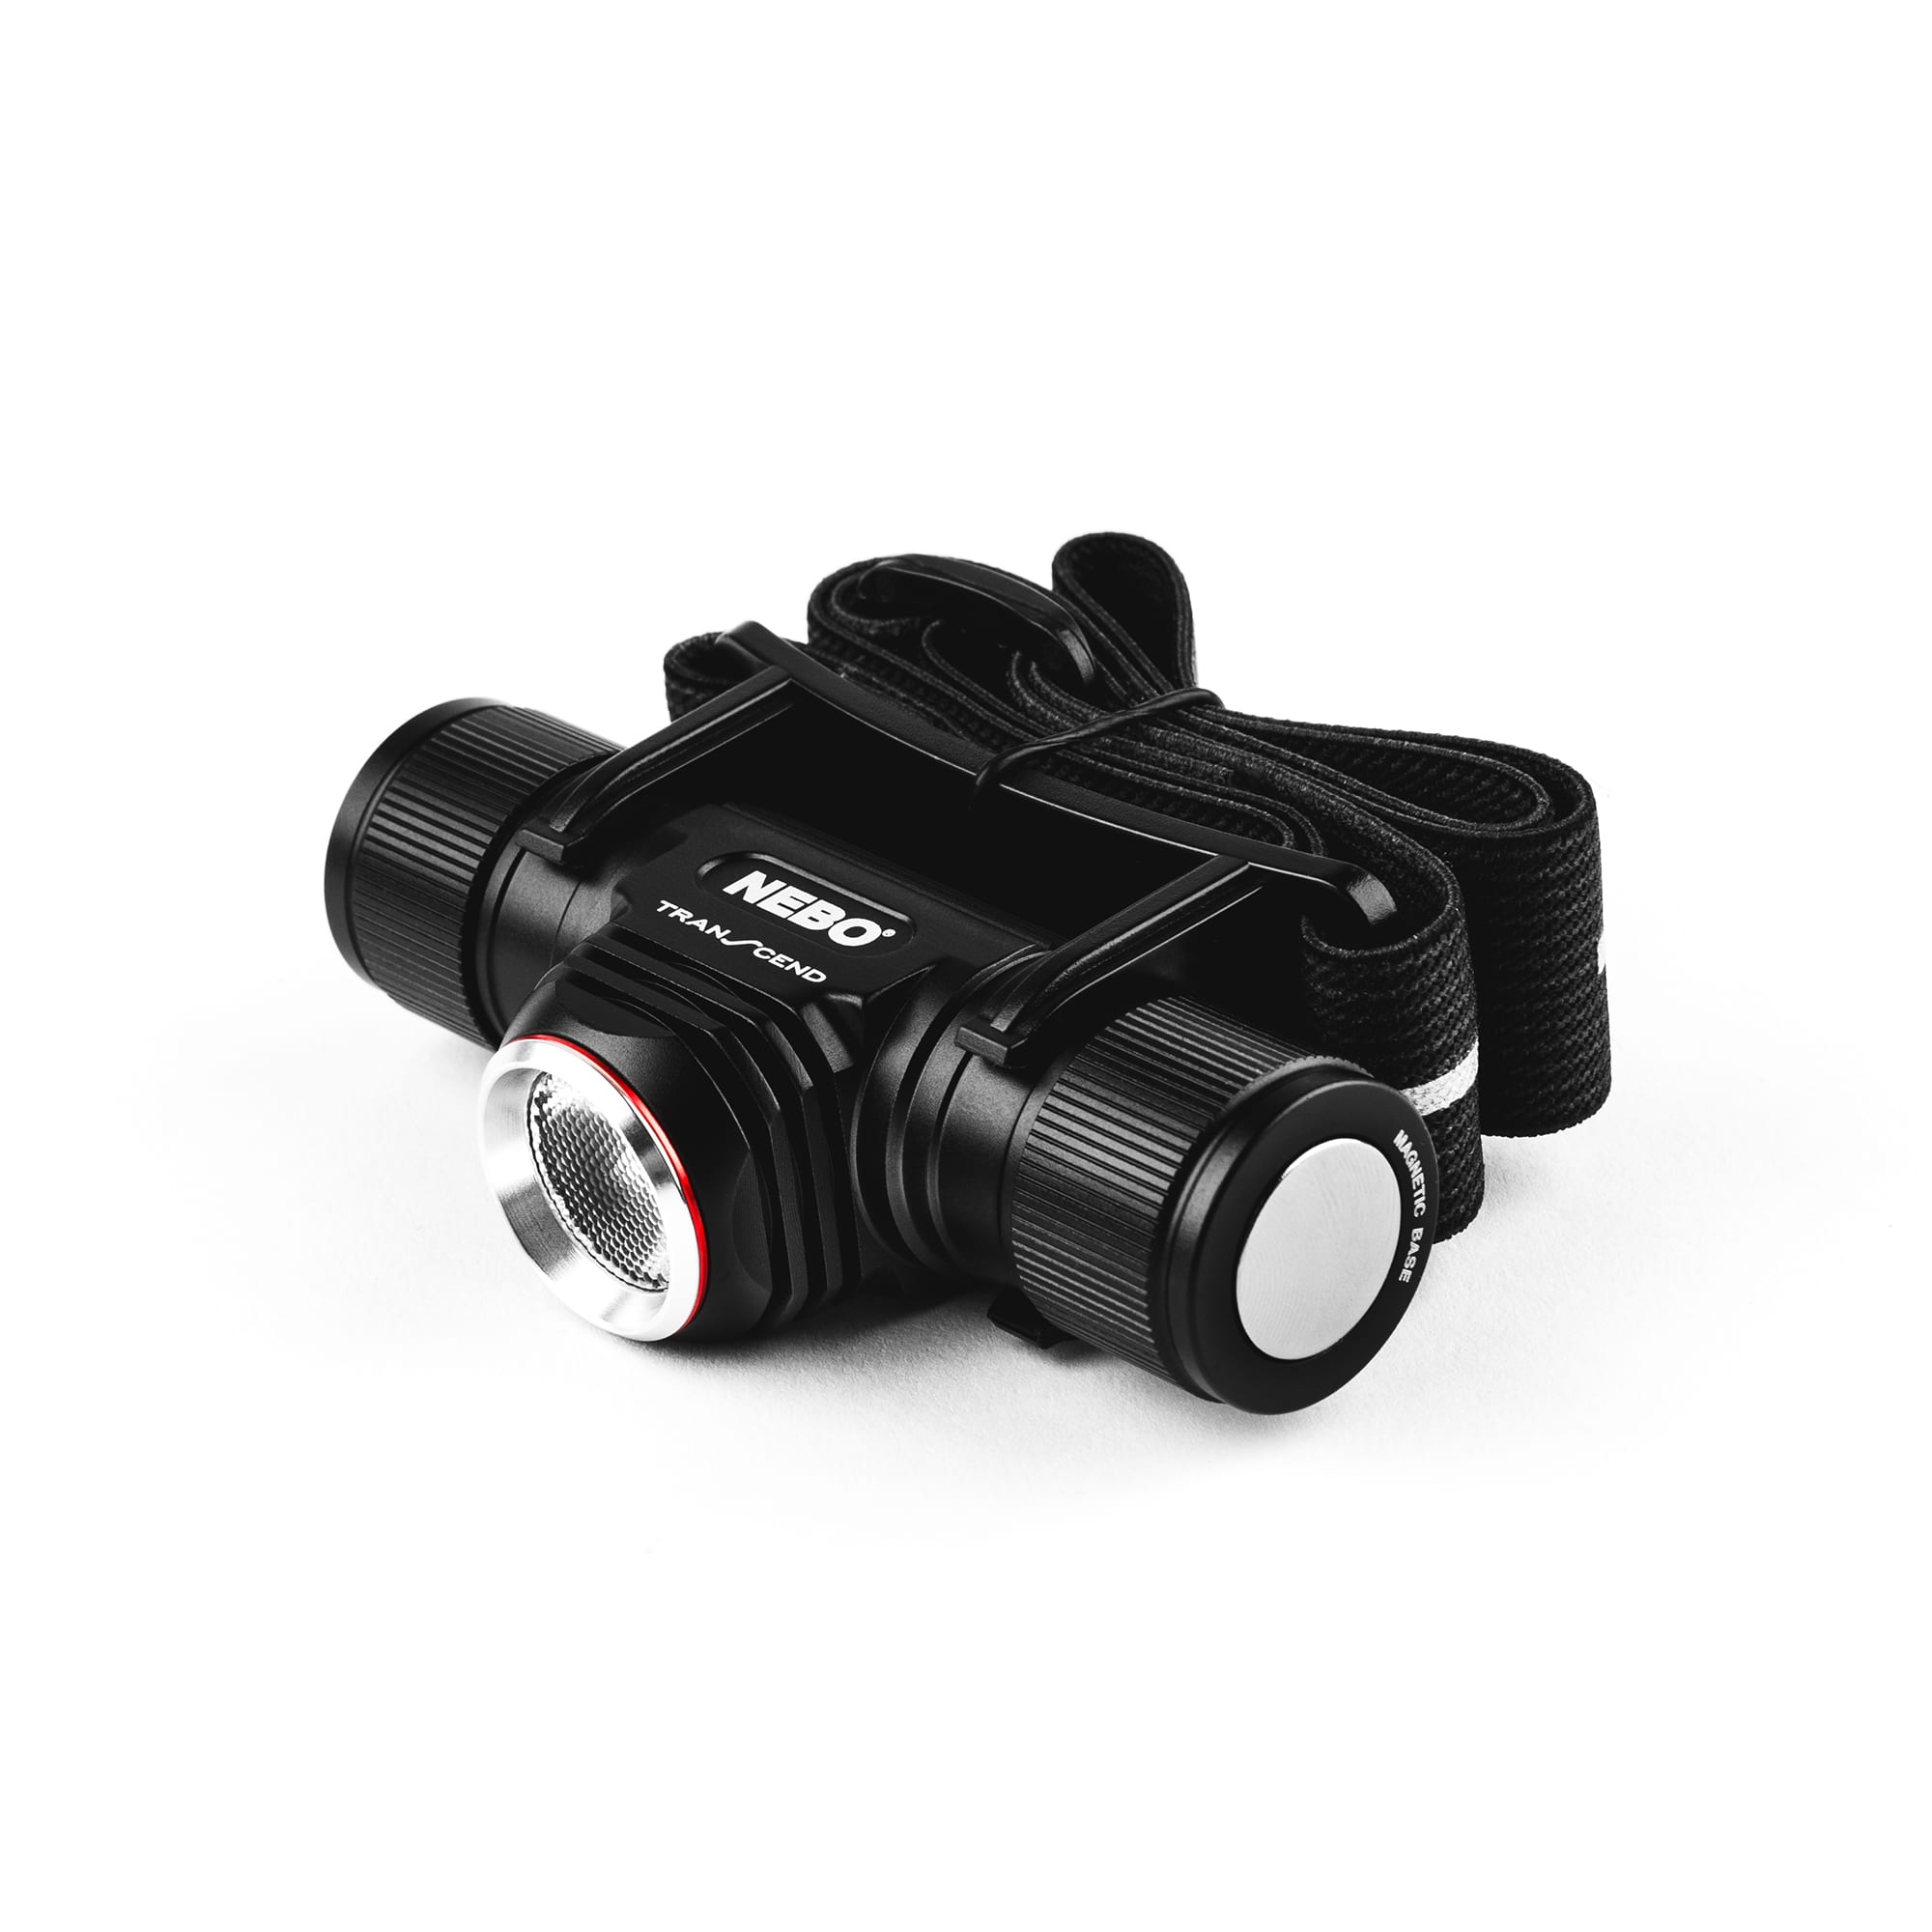 ΦΑΚΟΣ LED Transcend 1000 Lumens. Headtorch & Lantern